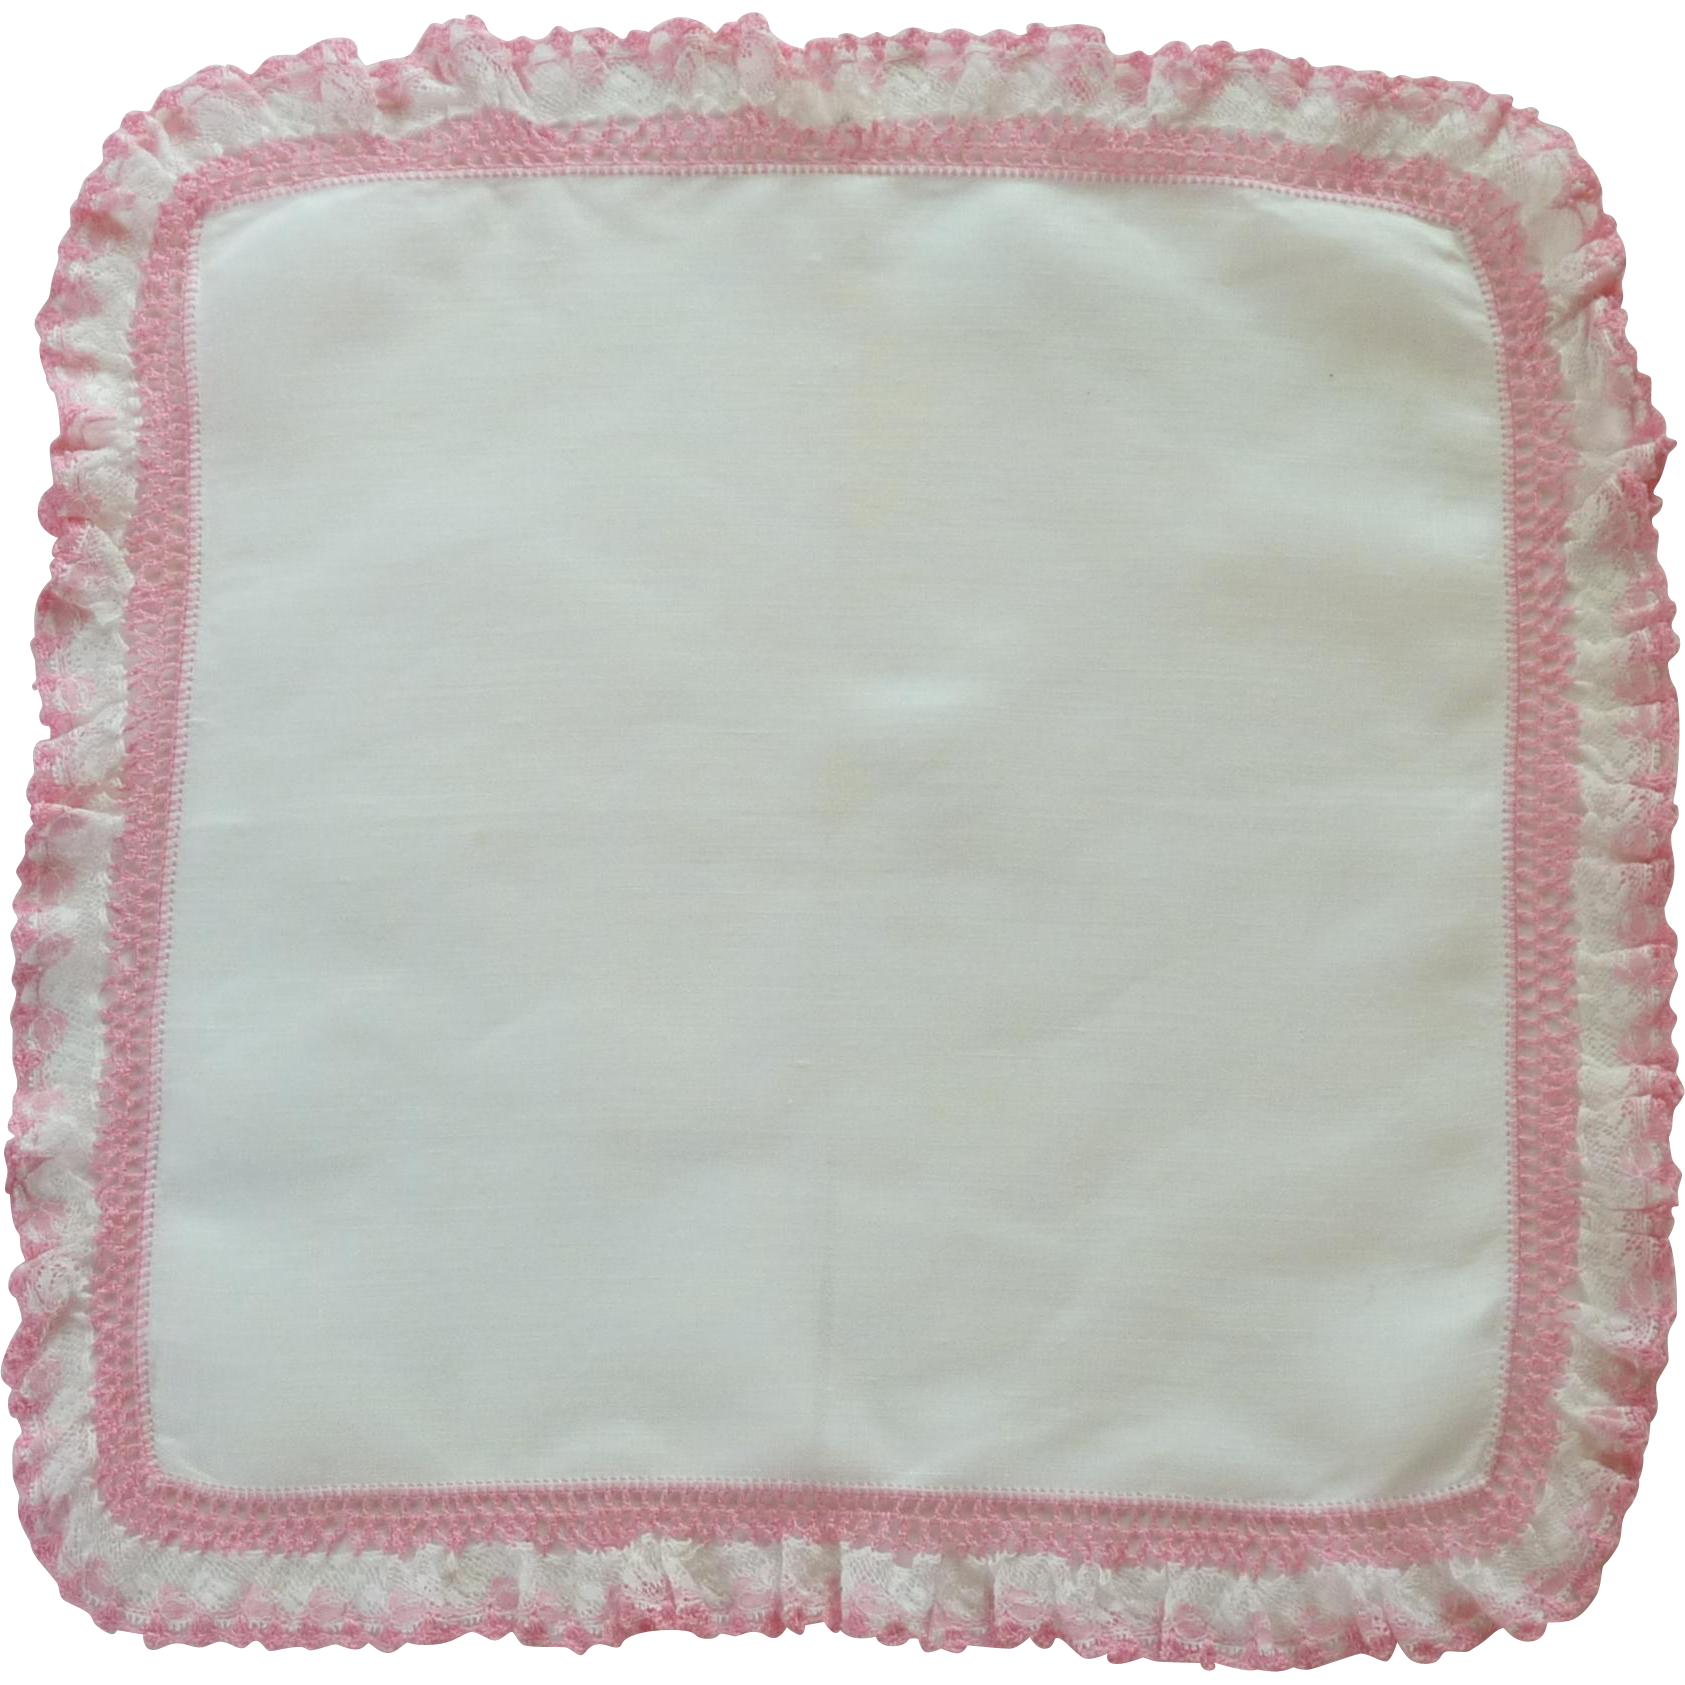 White Linen with Pink Lace and Crochet Edge Handkerchief Hanky